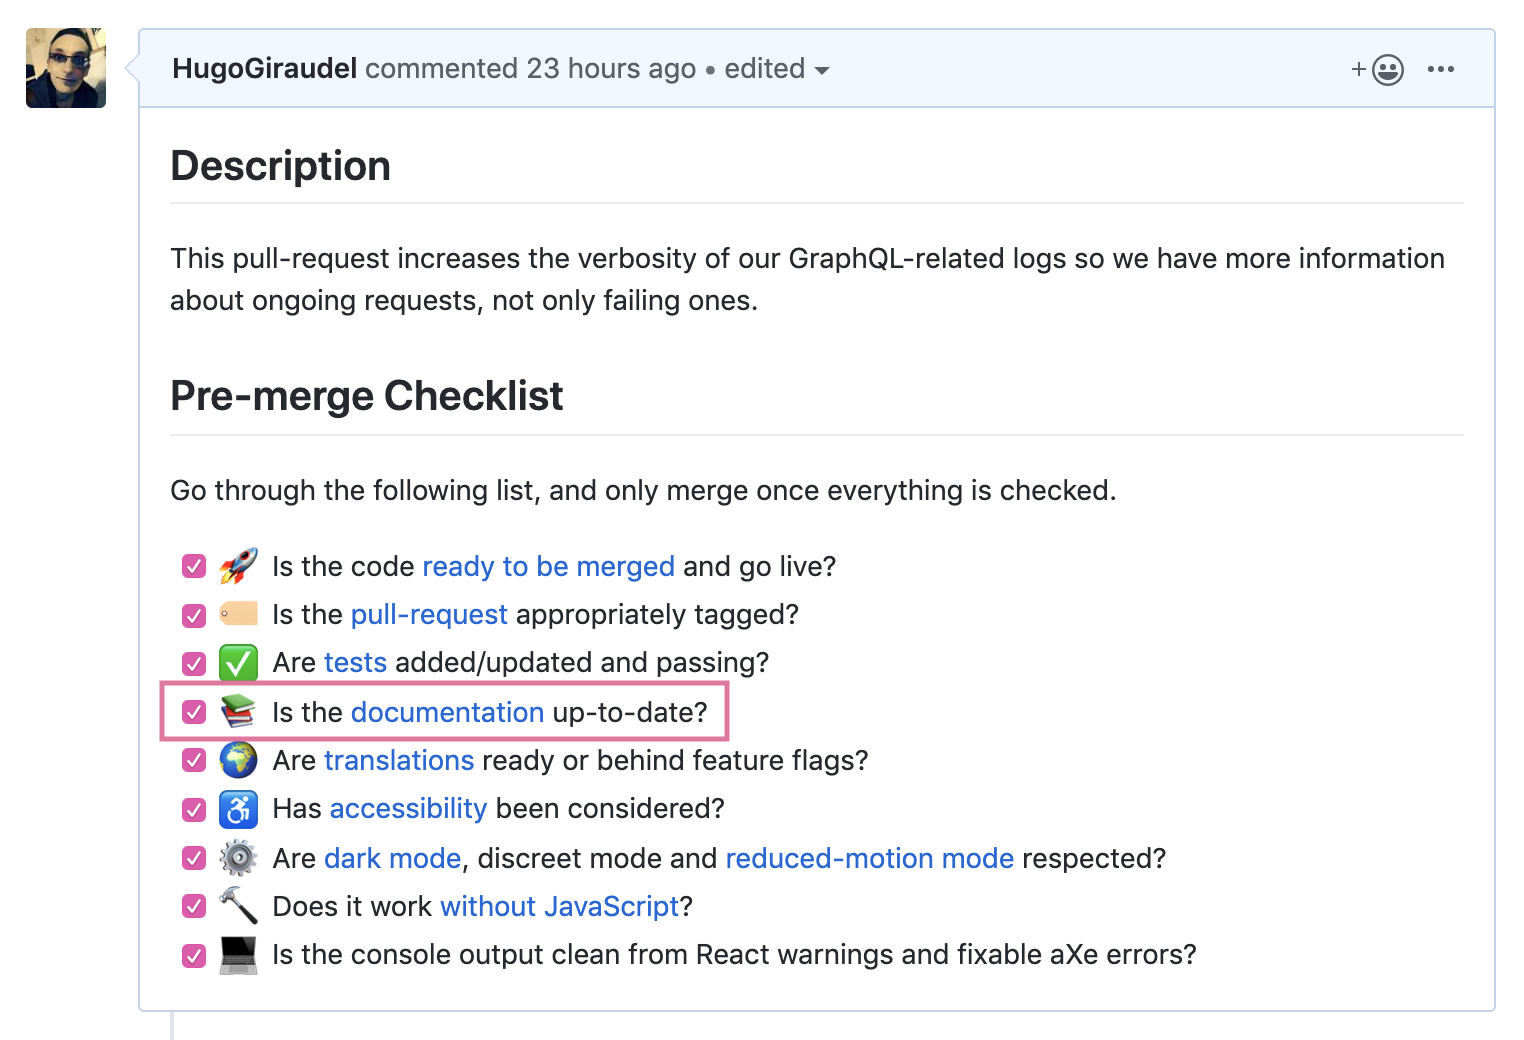 Documentation being mentioned in the pull-request template